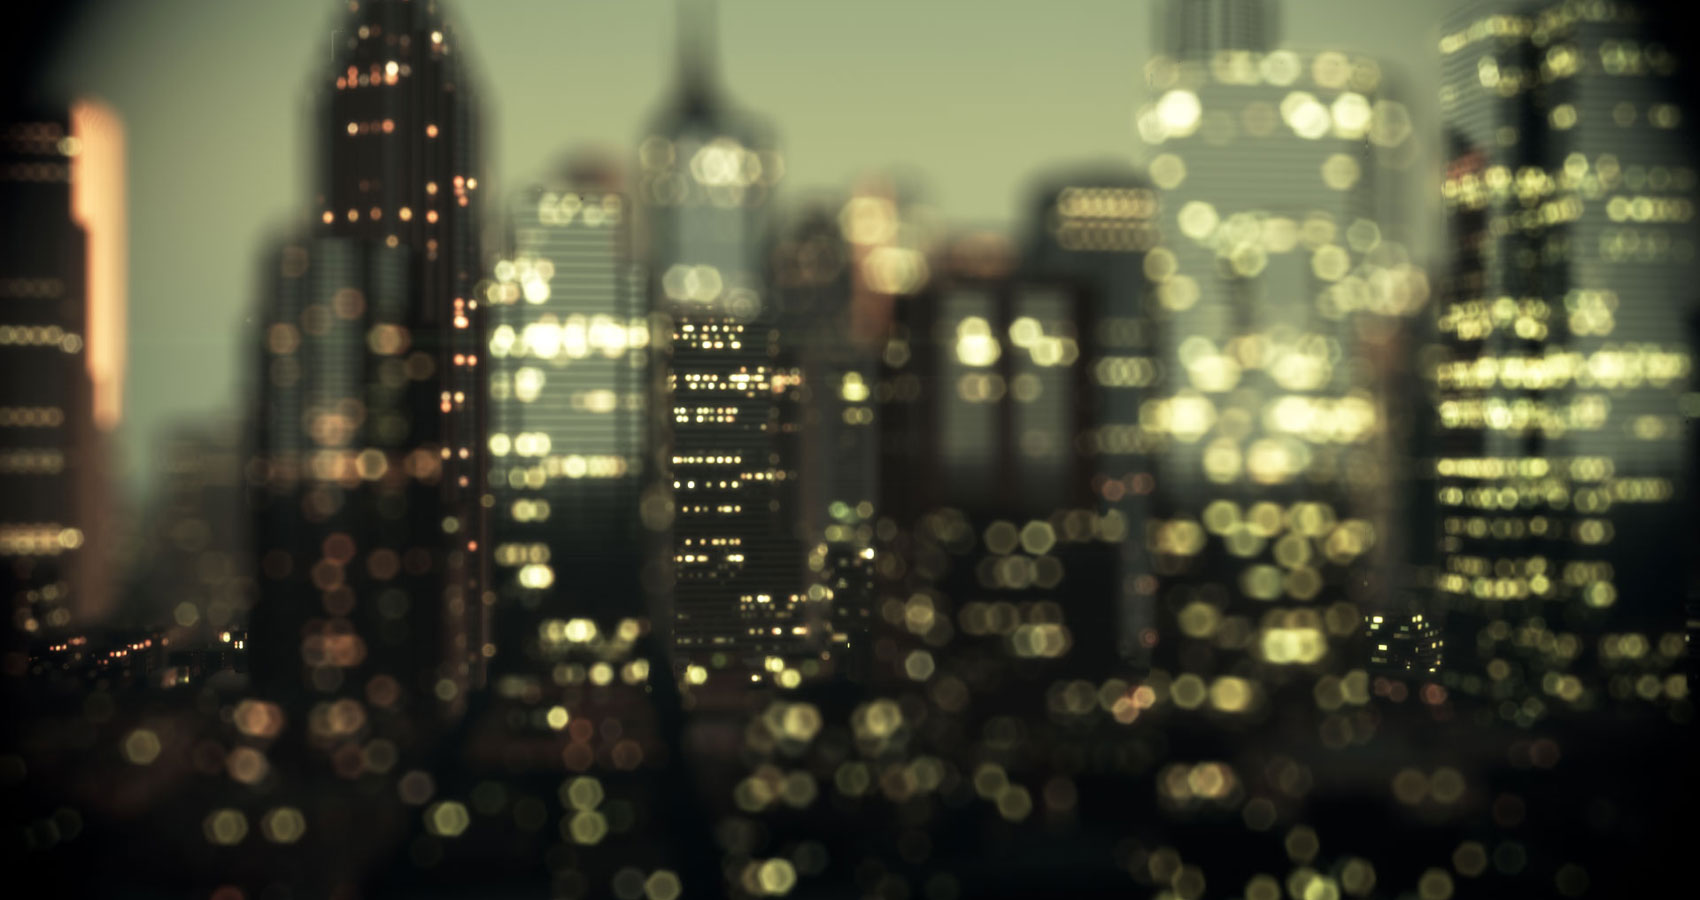 City Night written by Sneha Subramanian Kanta at Spillwords.com